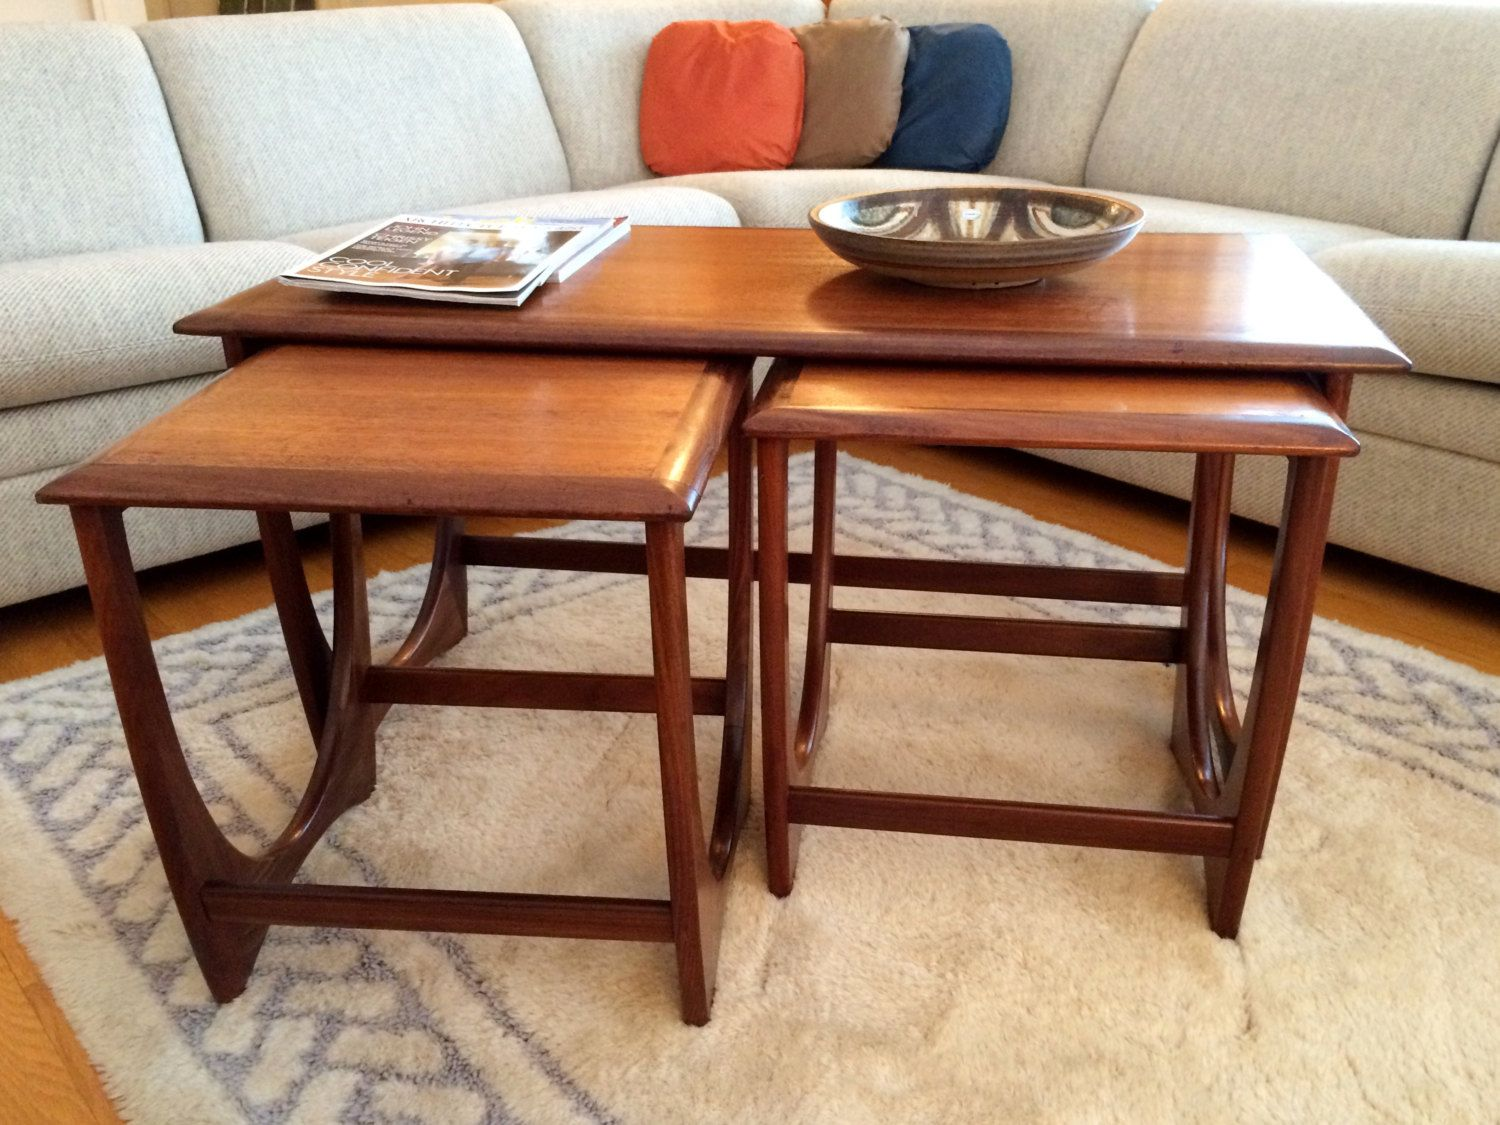 G Plan Teak Nesting Tables Coffee Table Matching End Tables Designed For E Gomme By Modernairemcmstudios On Coffee Table Nesting Tables Table Design